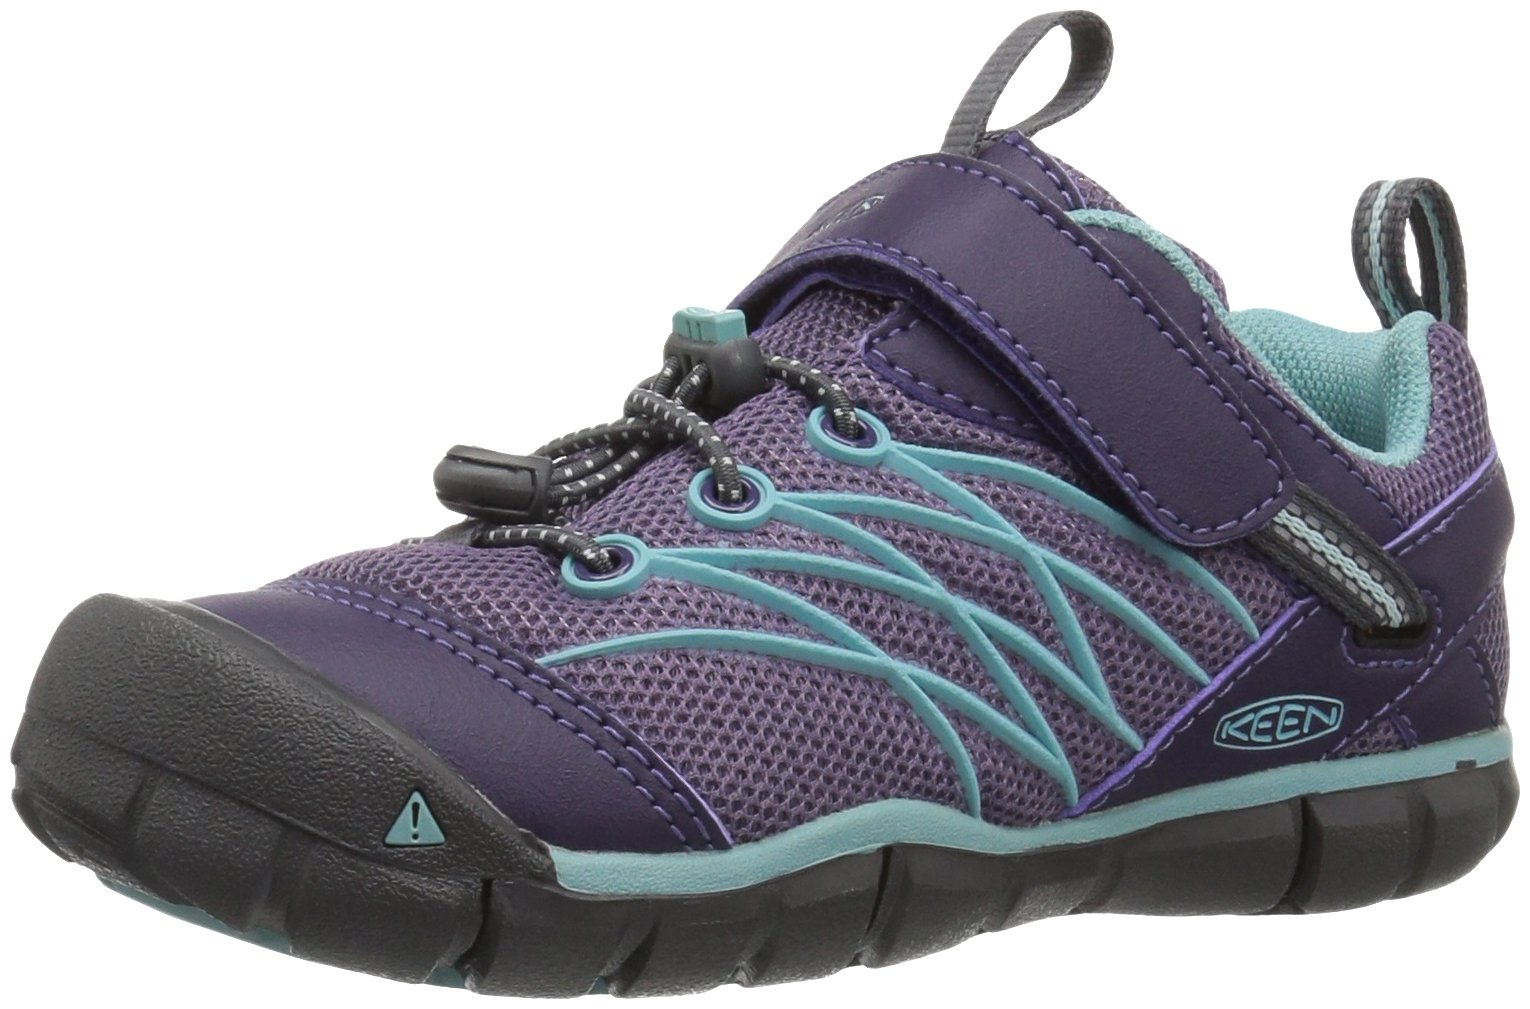 f1e3fa2e9f1 Galleon - Keen Kids' Chandler Cnx Hiking Shoe, Montana Grape/Aqua Haze, 6  Youth US Big Kid